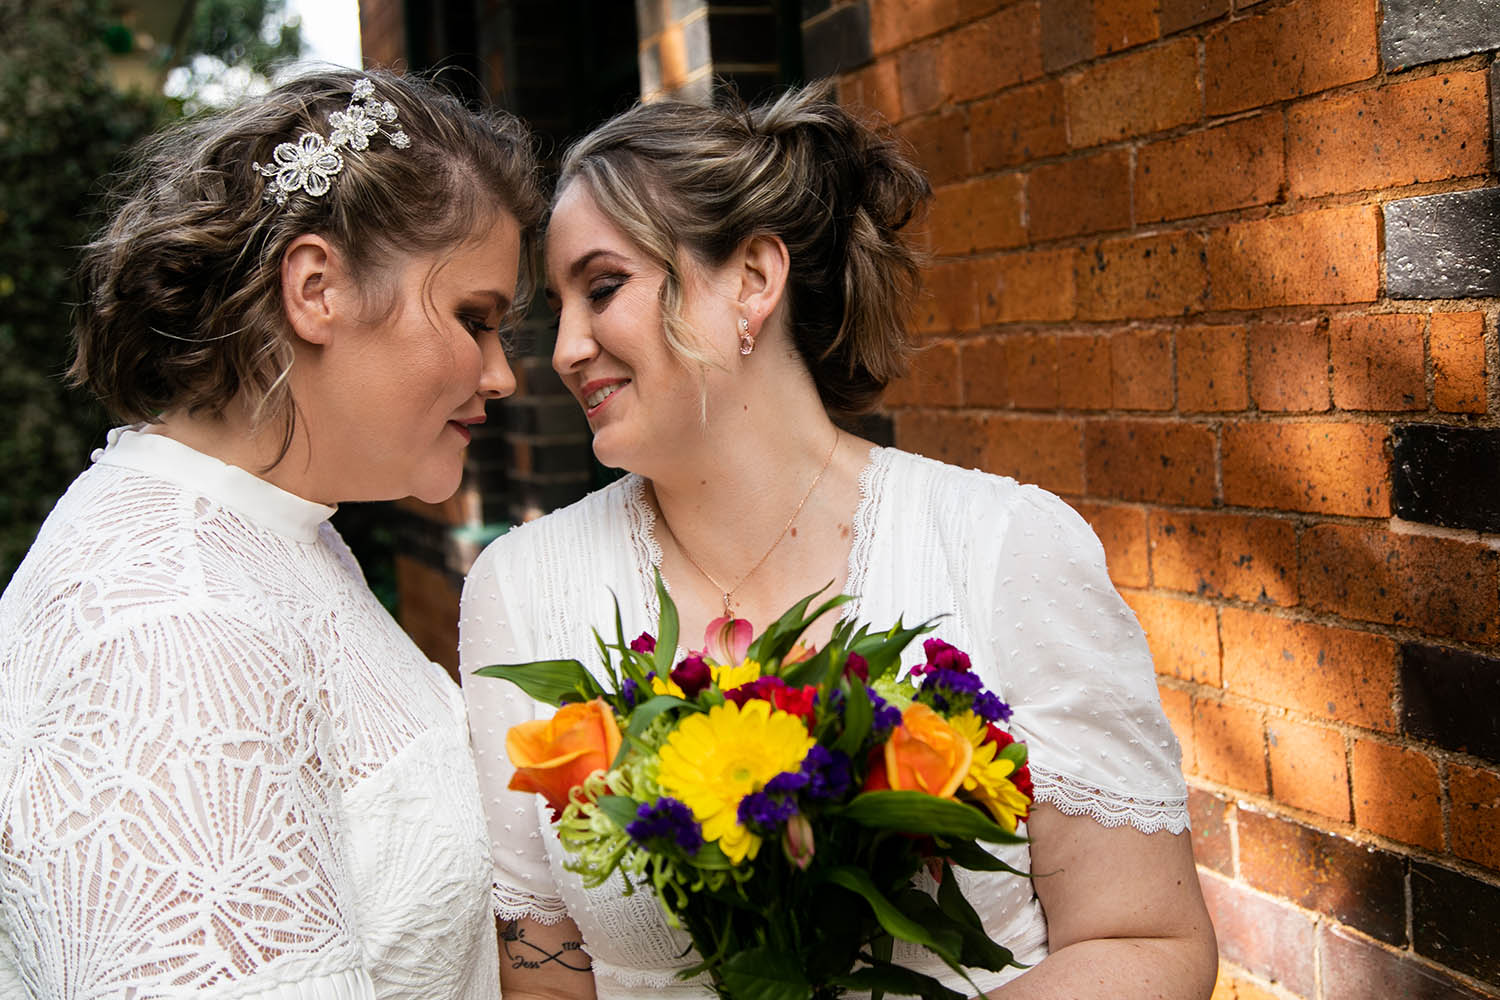 Wedding Photography - Brides with rainbow flowers